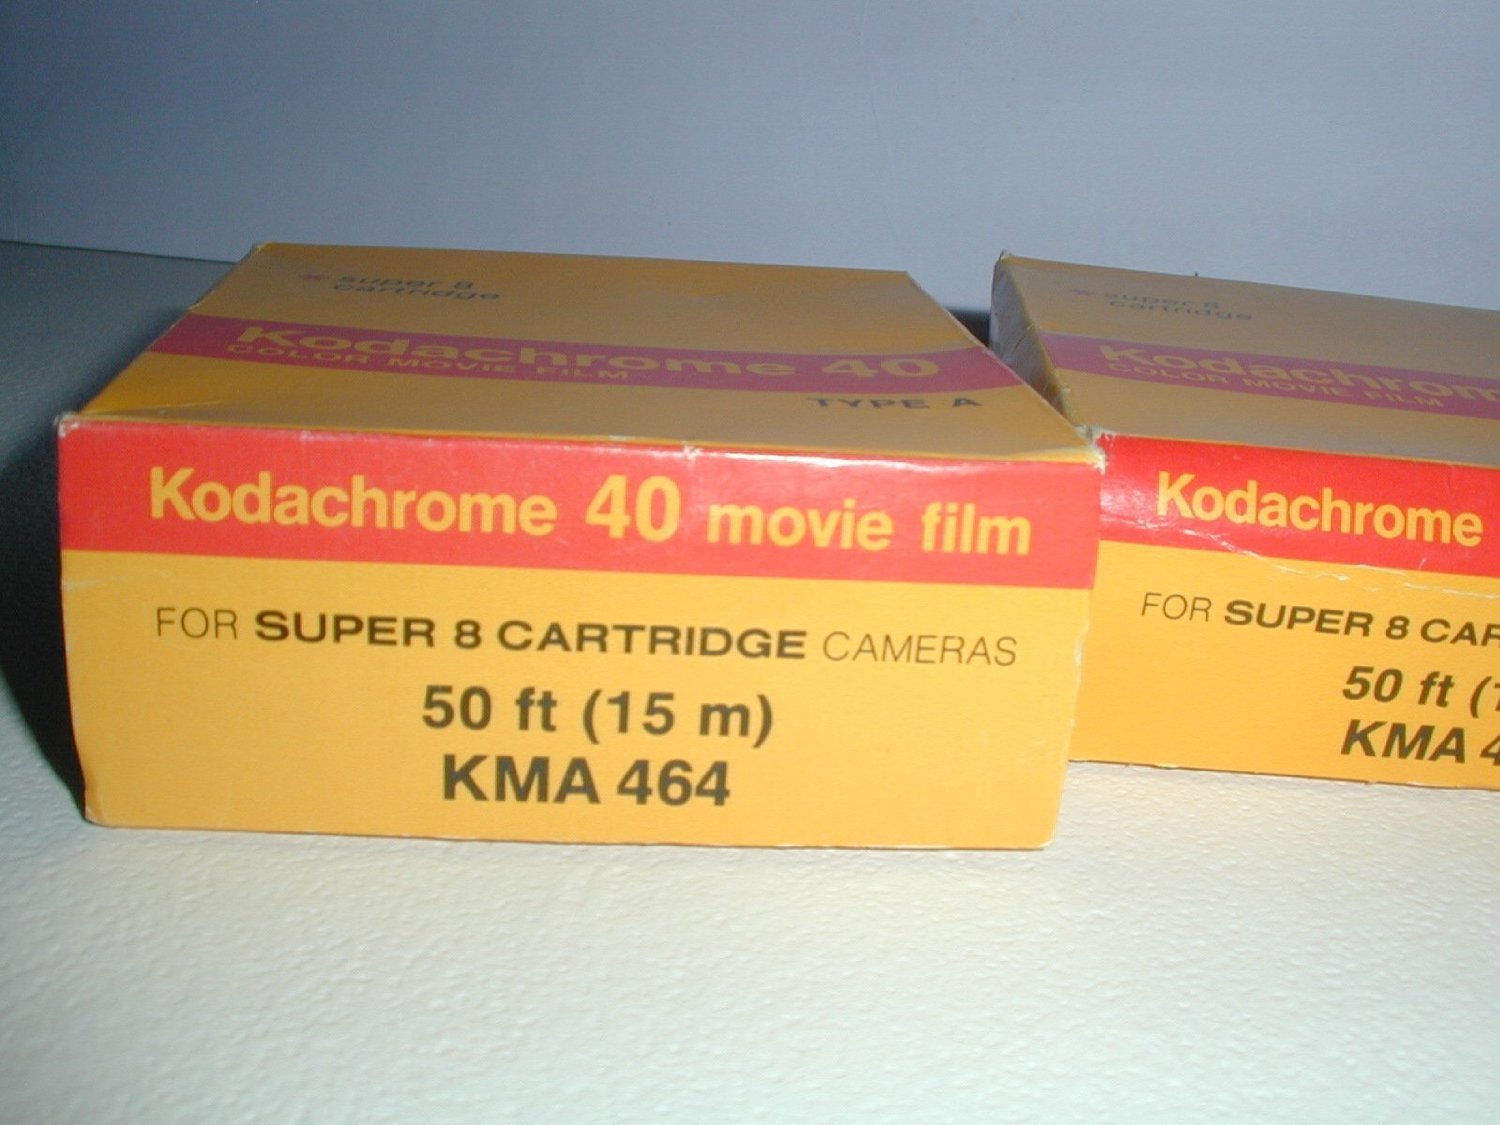 Kodak KMA-464 Super 8 Kodachrome 40 Movie Film